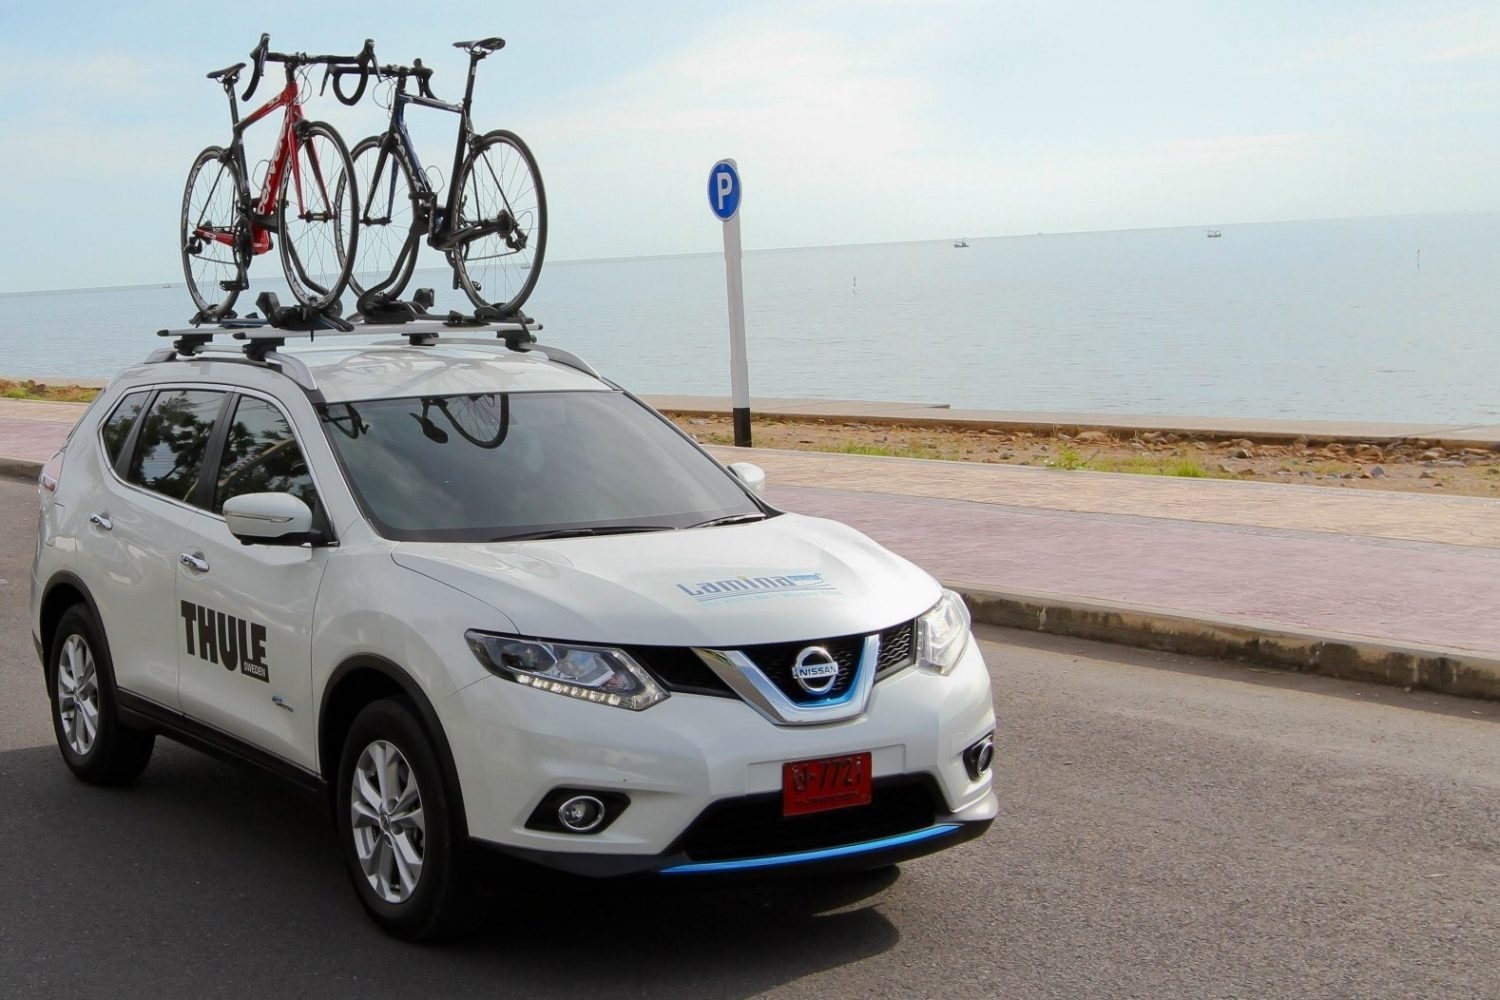 Nissan X-Trail, the Favorite SUV for the modern lifestyle.